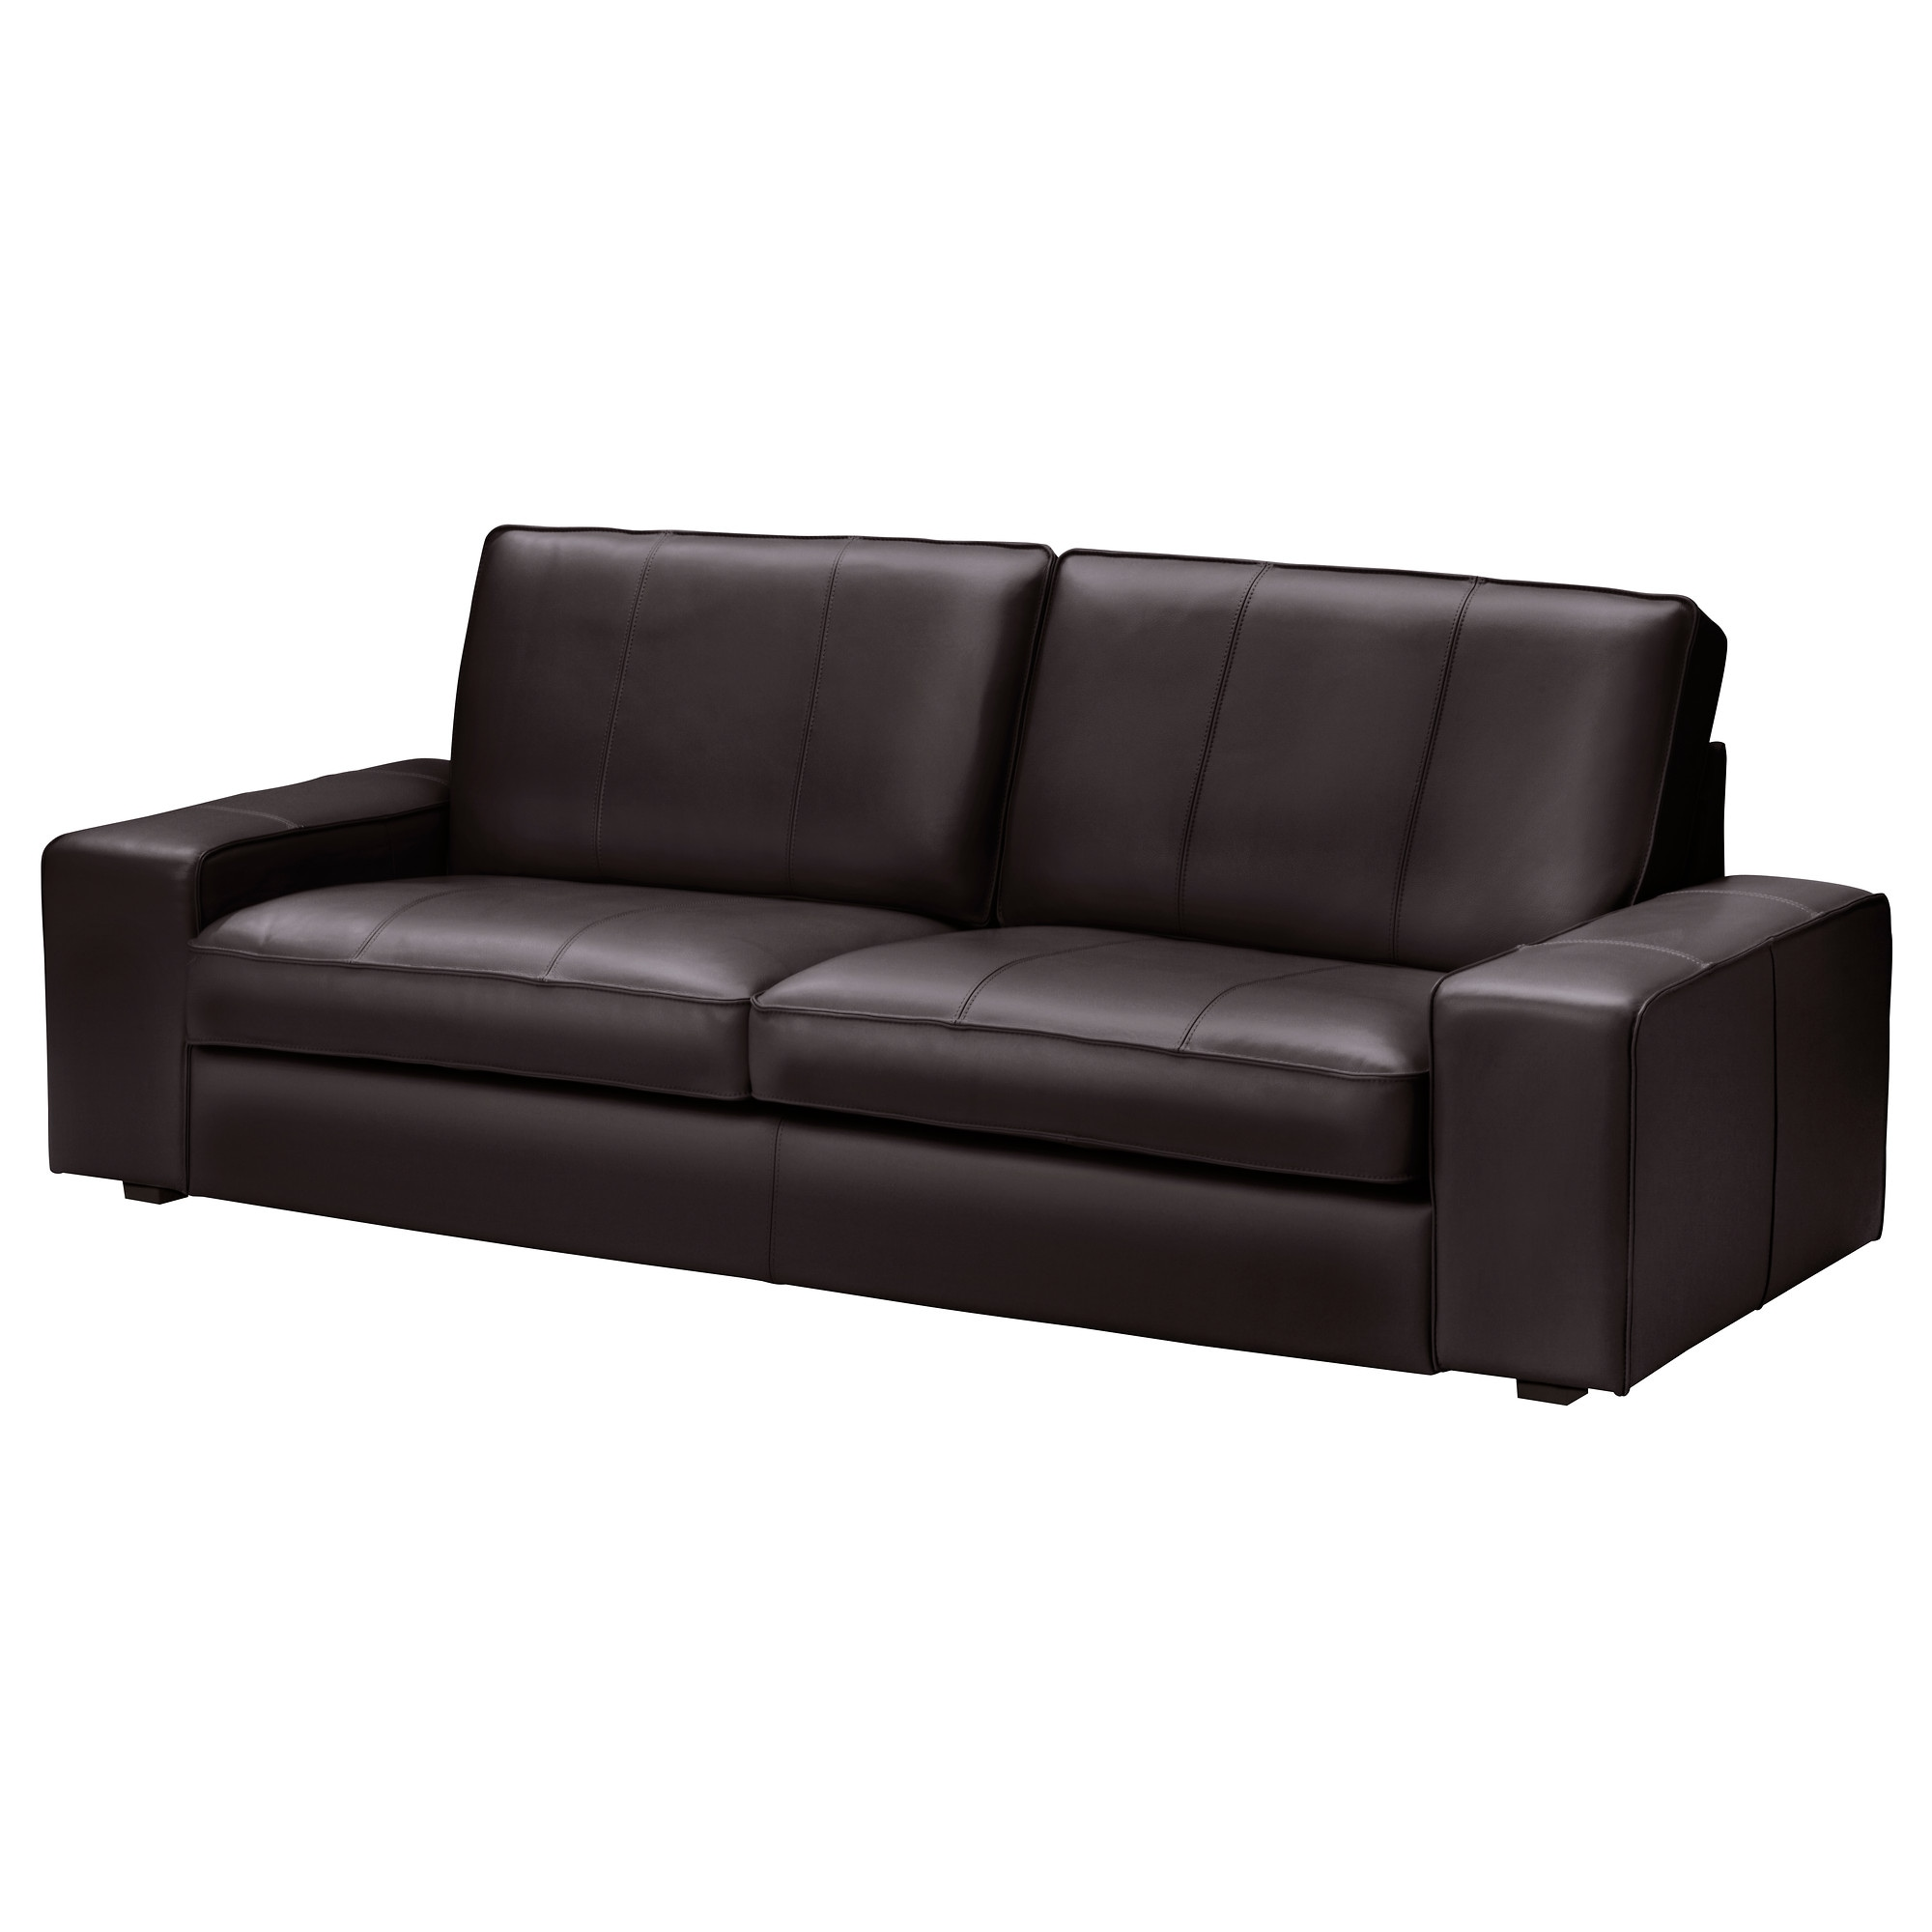 Leather faux leather sofas IKEA